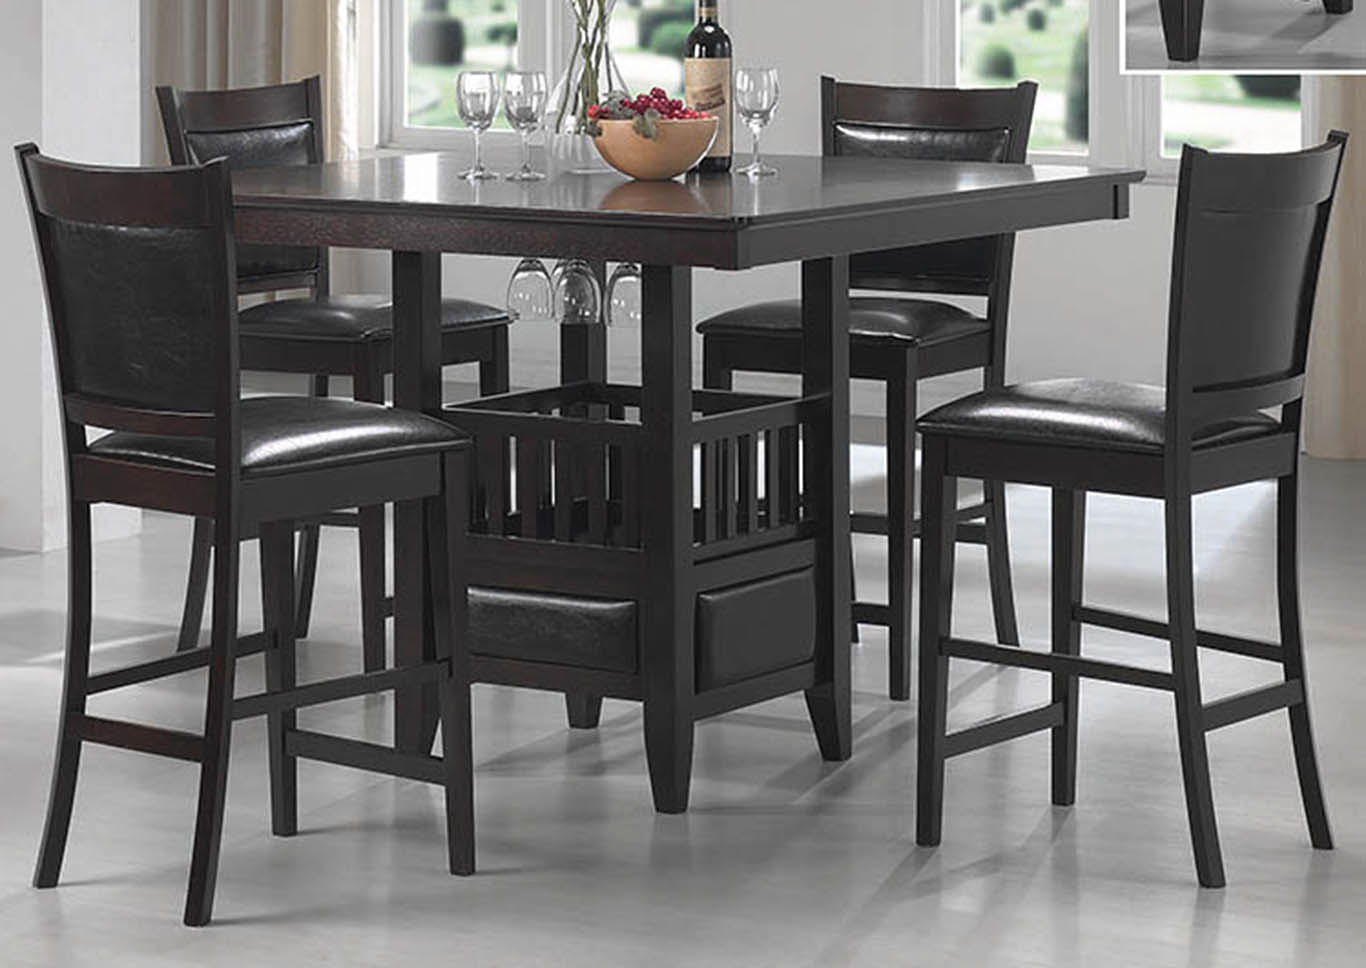 Dream Decor – Furniture – Springfield – Ma Jaden Espresso Counter Table Regarding Newest Springfield 3 Piece Dining Sets (View 8 of 20)